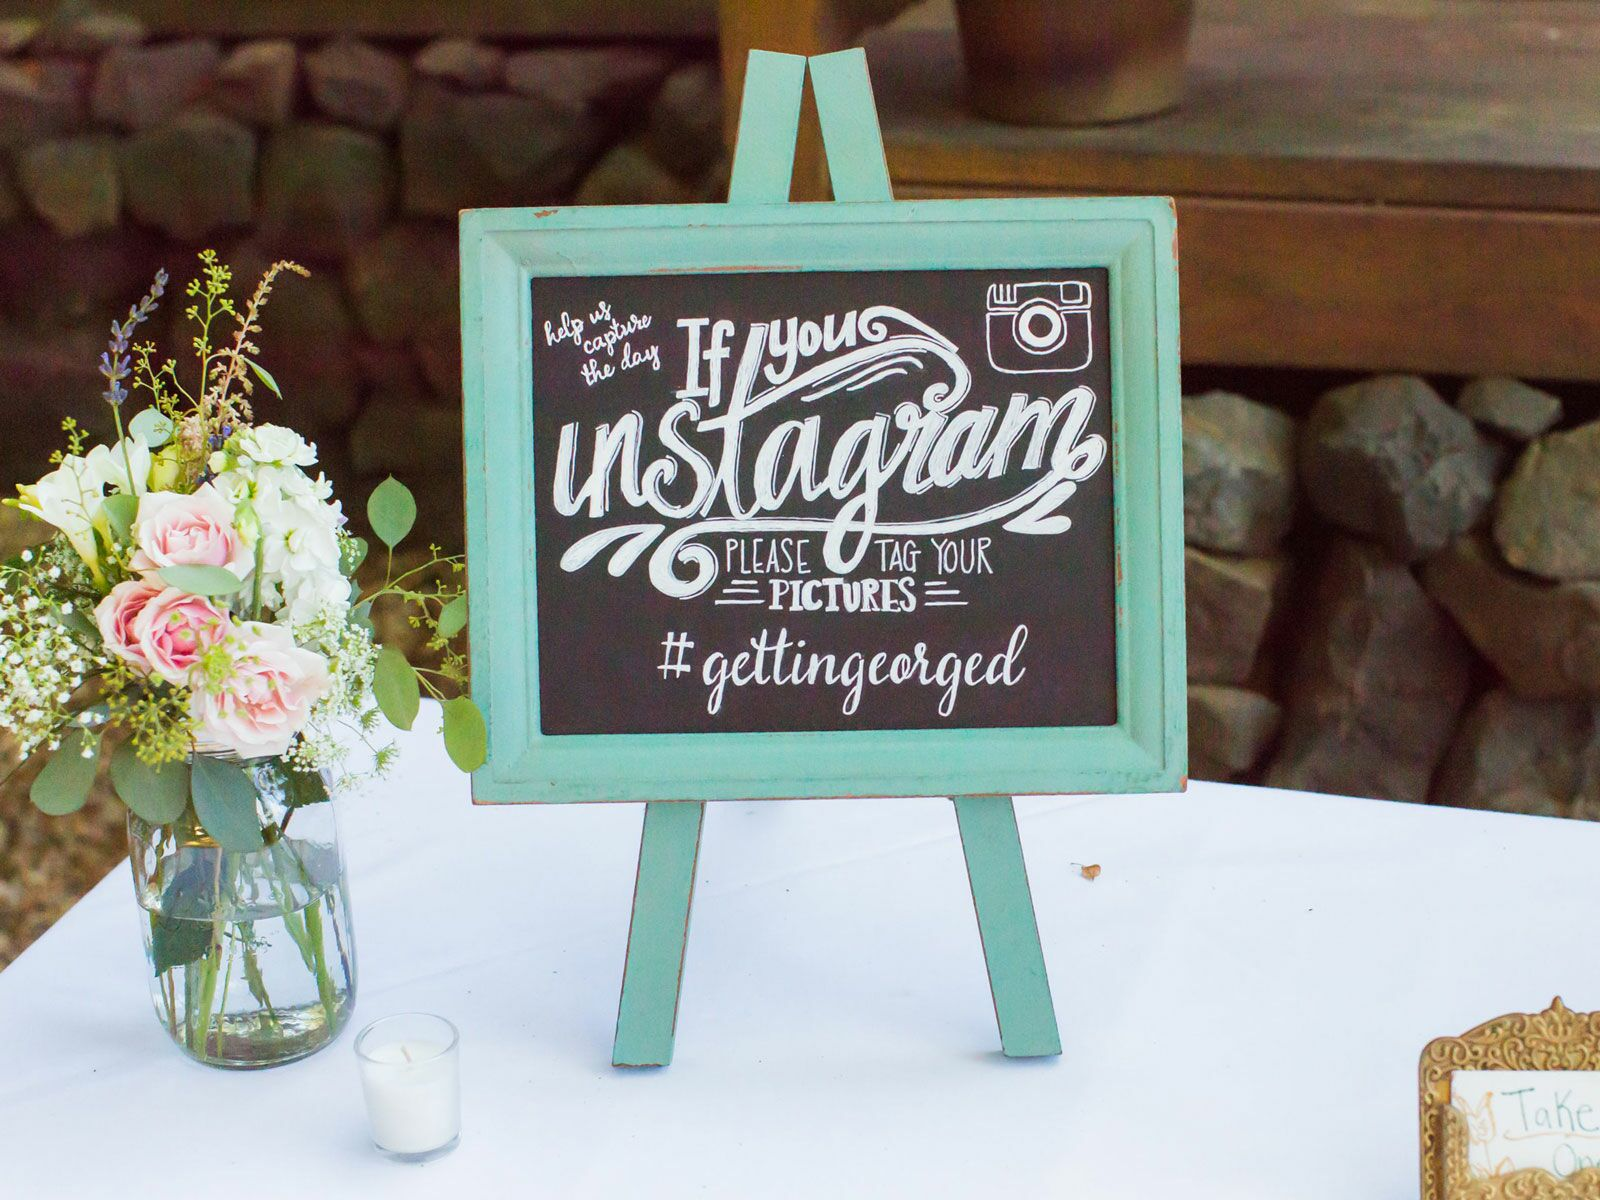 Wedding Hashtags Generator.The Best Wedding Hashtag Ideas How To Make Your Own